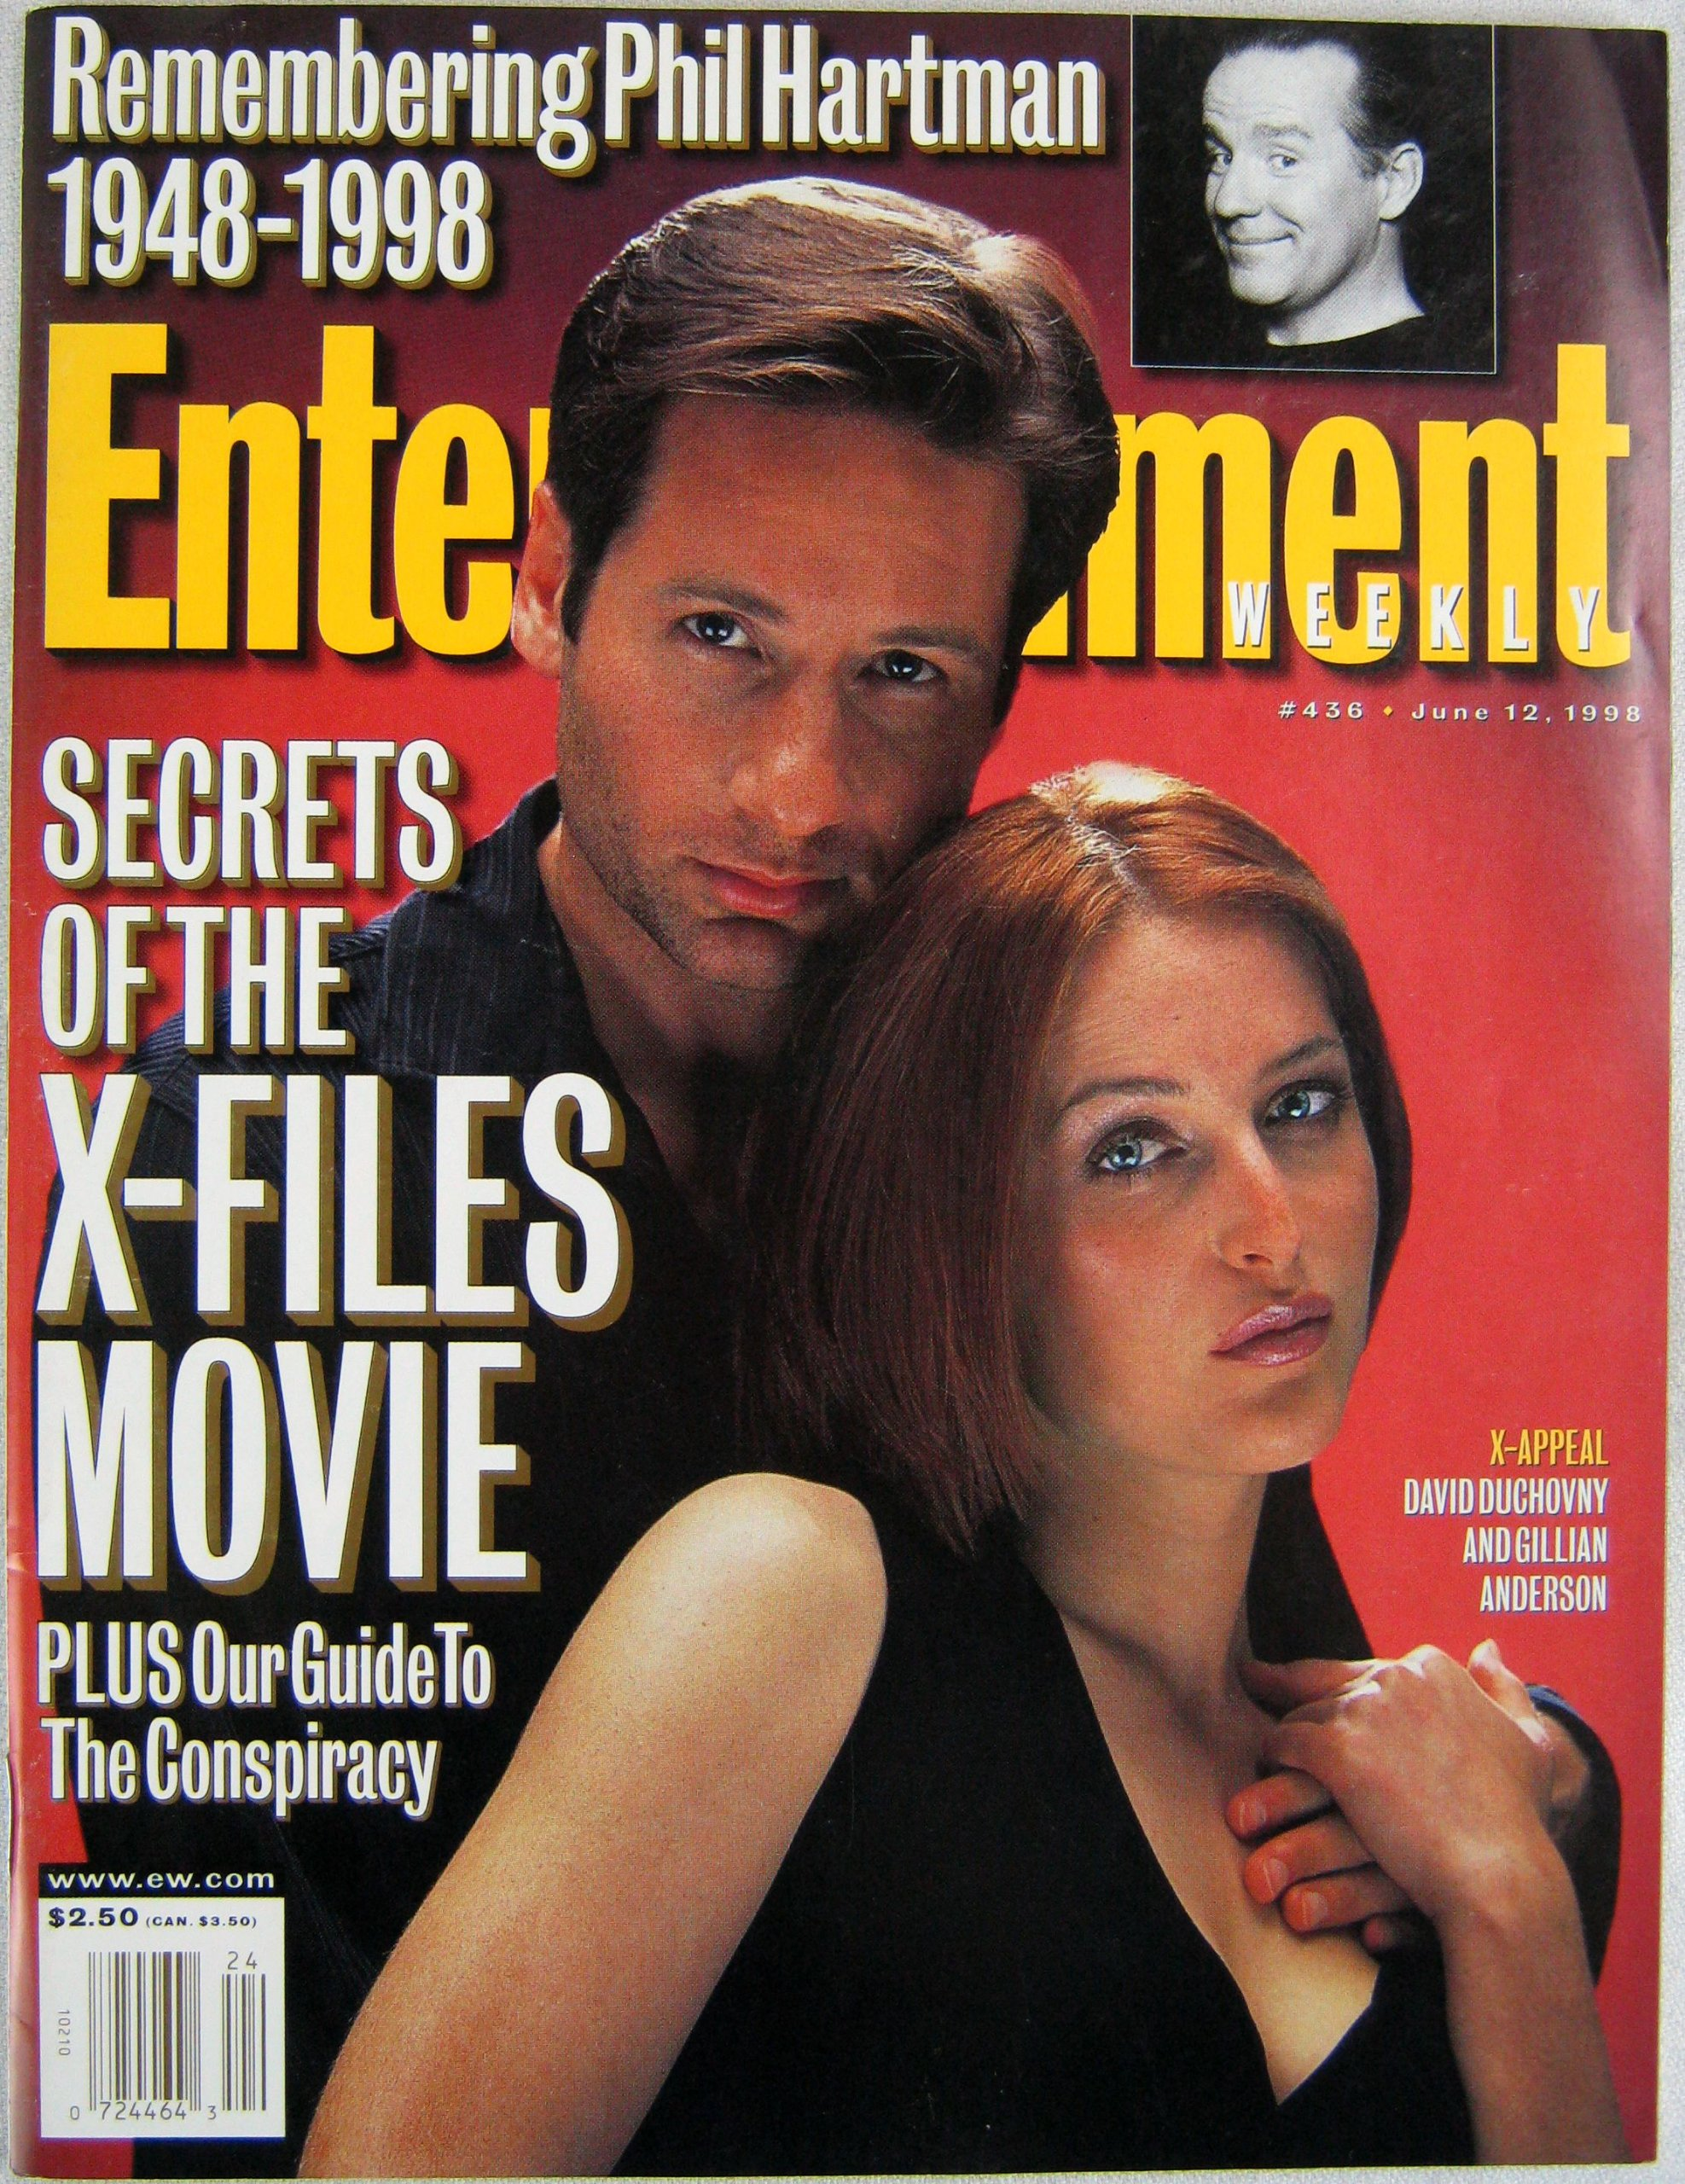 Entertainment Weekly June 12 1998 Secrets Of The X Files Movie Remembering Phil Hartman Multiple Authors Amazon Com Books